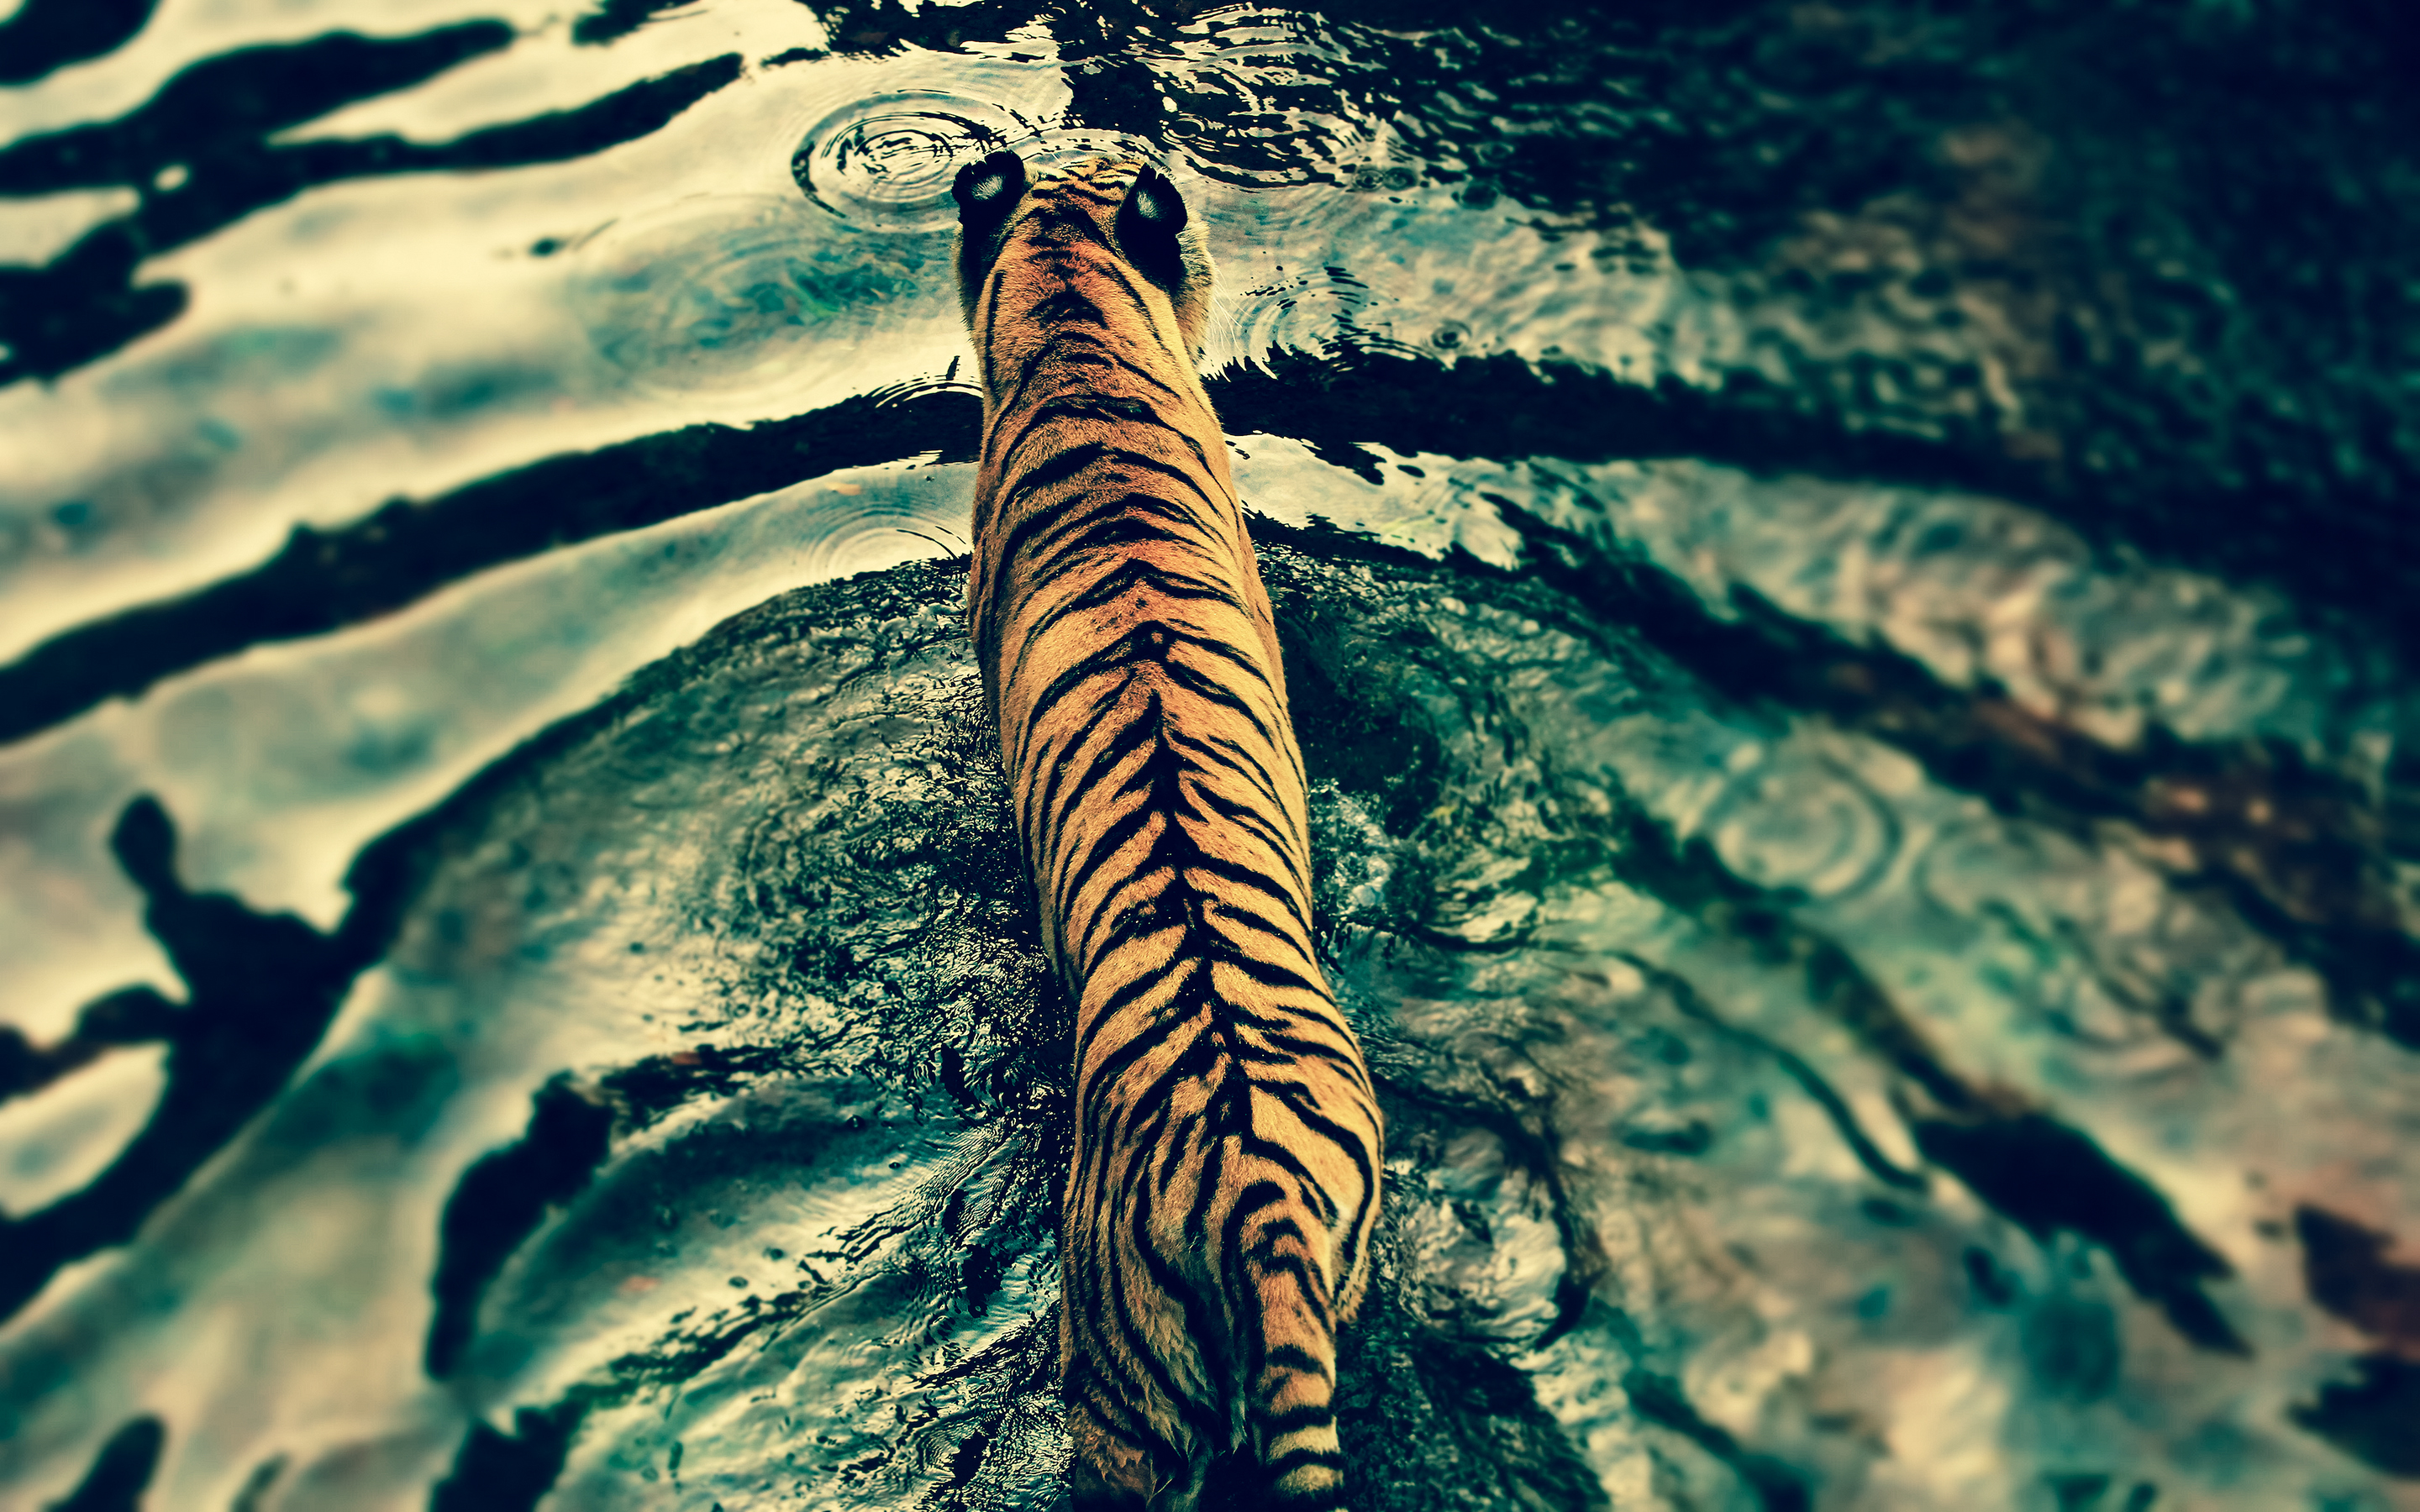 Download our latest collection of Tiger Hd Wallpaper For Laptop 2880x1800